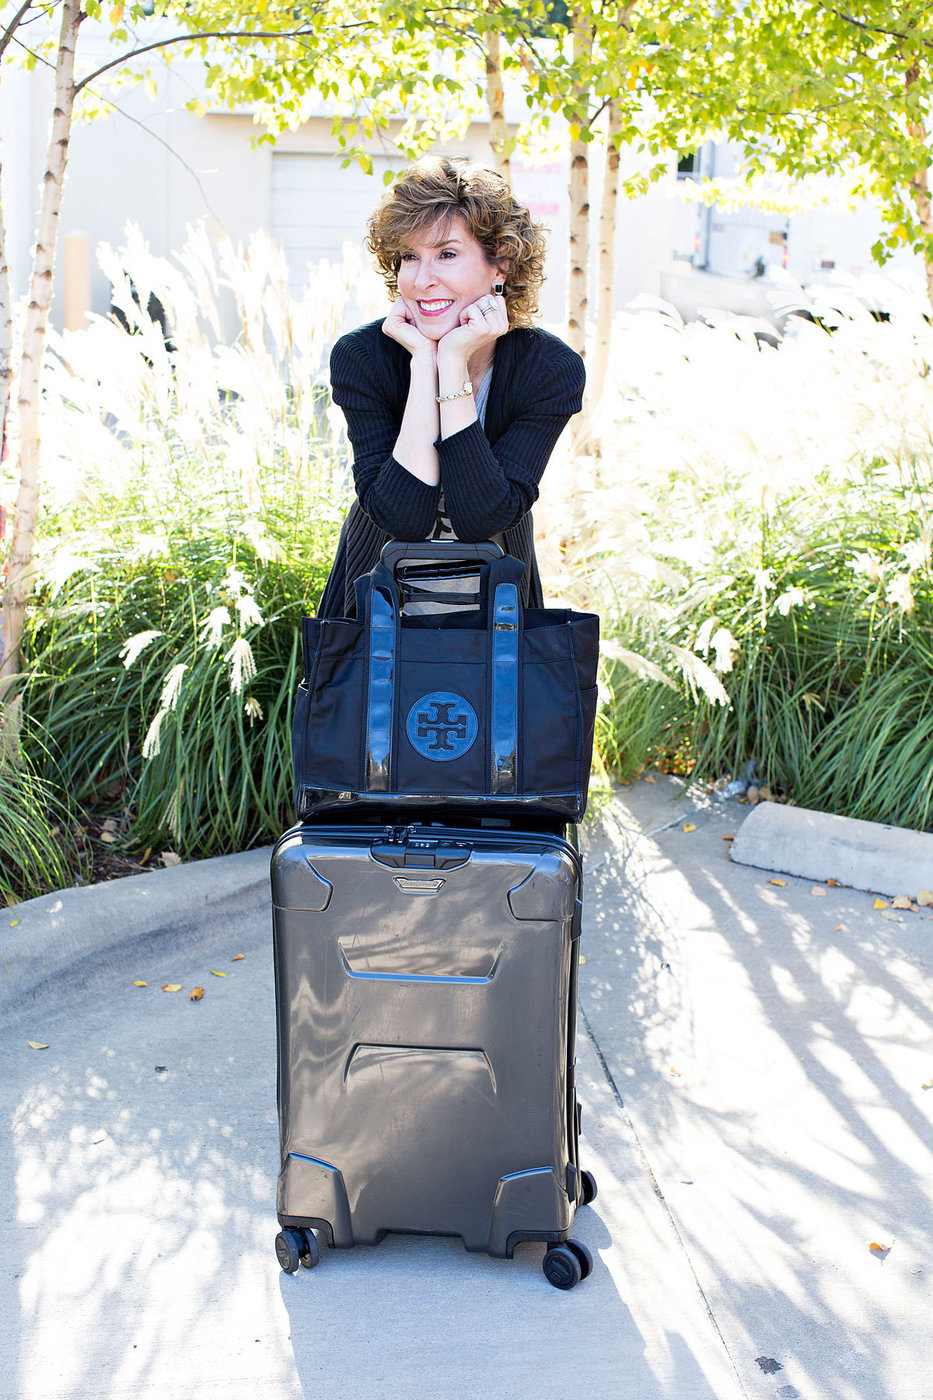 Travel essentials, carry-on travel, packing list for carry on, travel carry on packing list, travel packing list, carry on essentials, what to take in carry on, travel, empty nester travel, empty nester getaway, carry on packing list